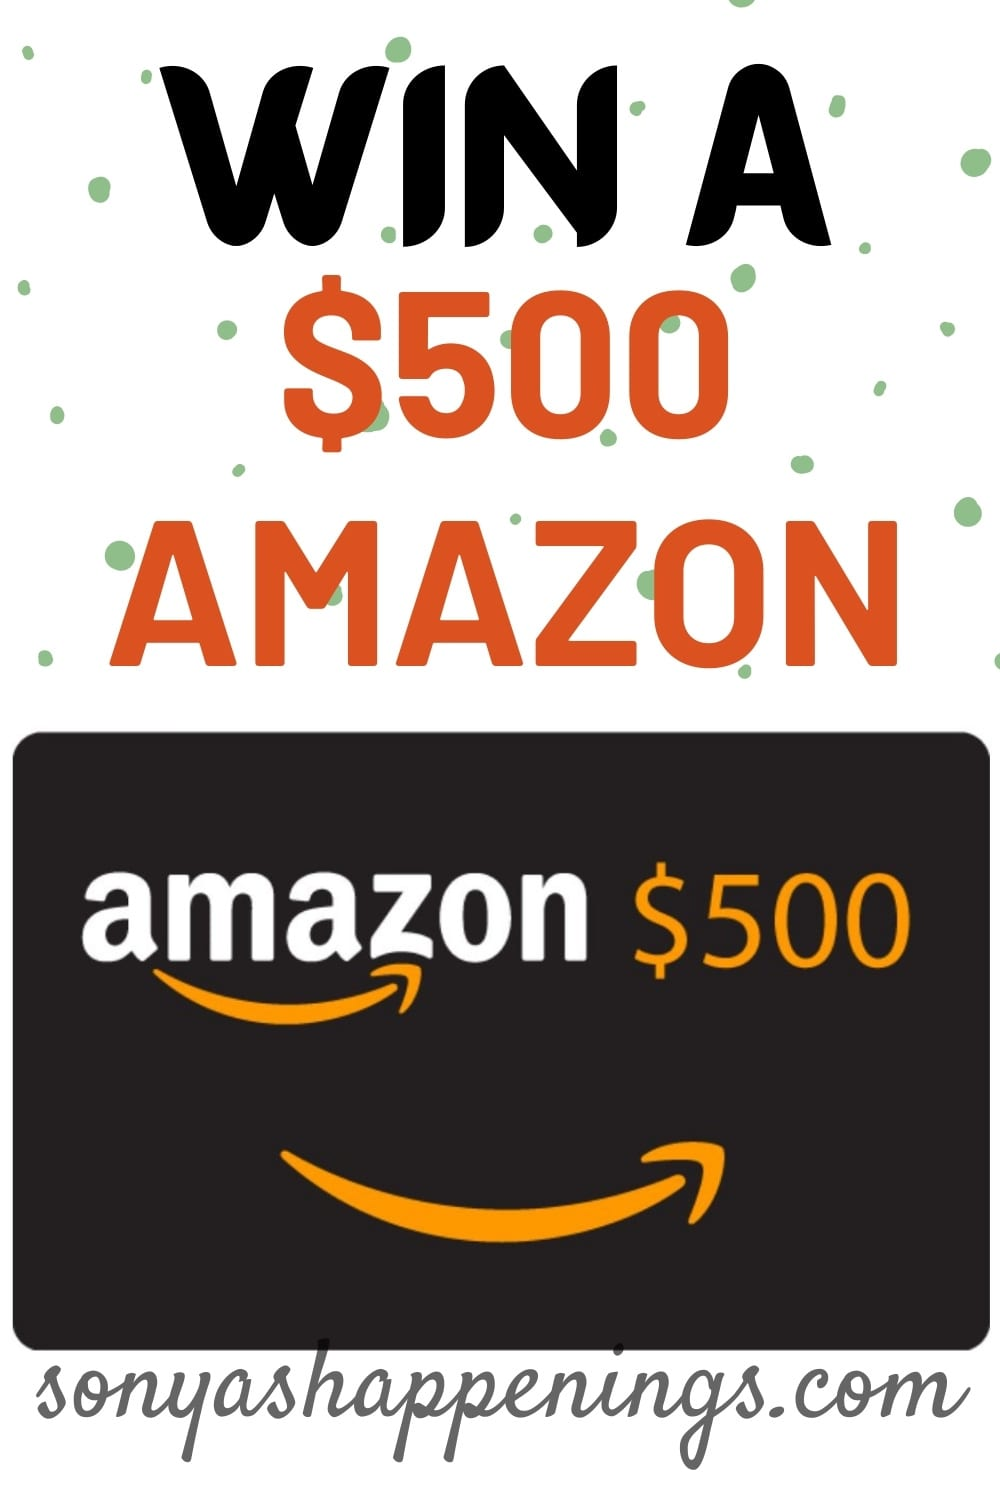 Win a $500 Amazon gift card and a Centrum prize pack ~ sweeps ends 12-9